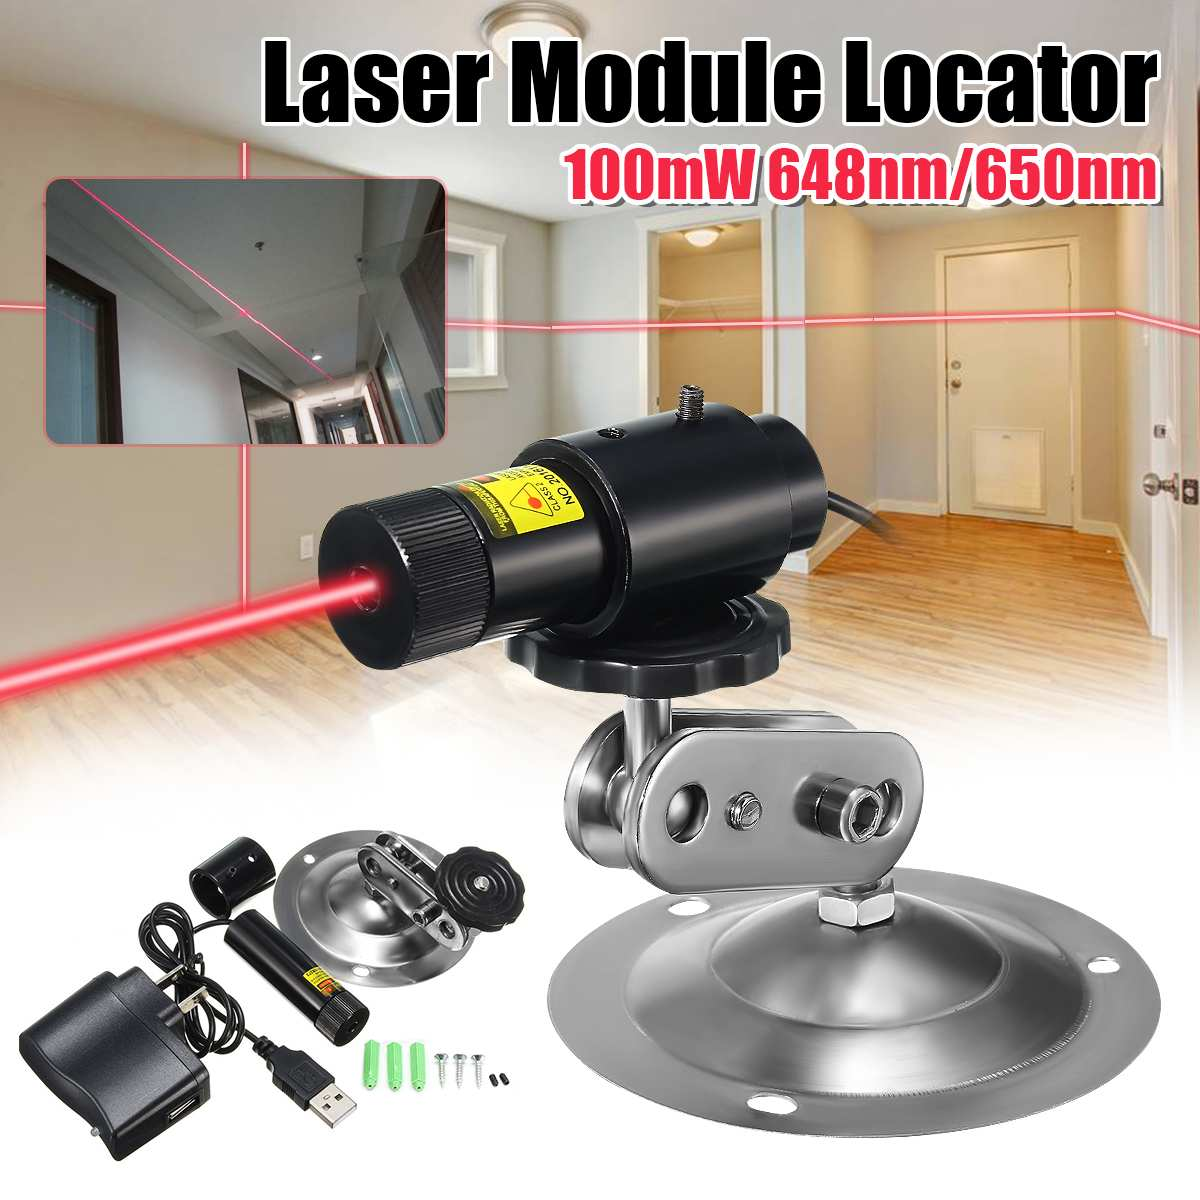 650nm 100mW Red Laser Line Module Locator For Cutting Machine + Adapter & Mount Industrial Woodworki